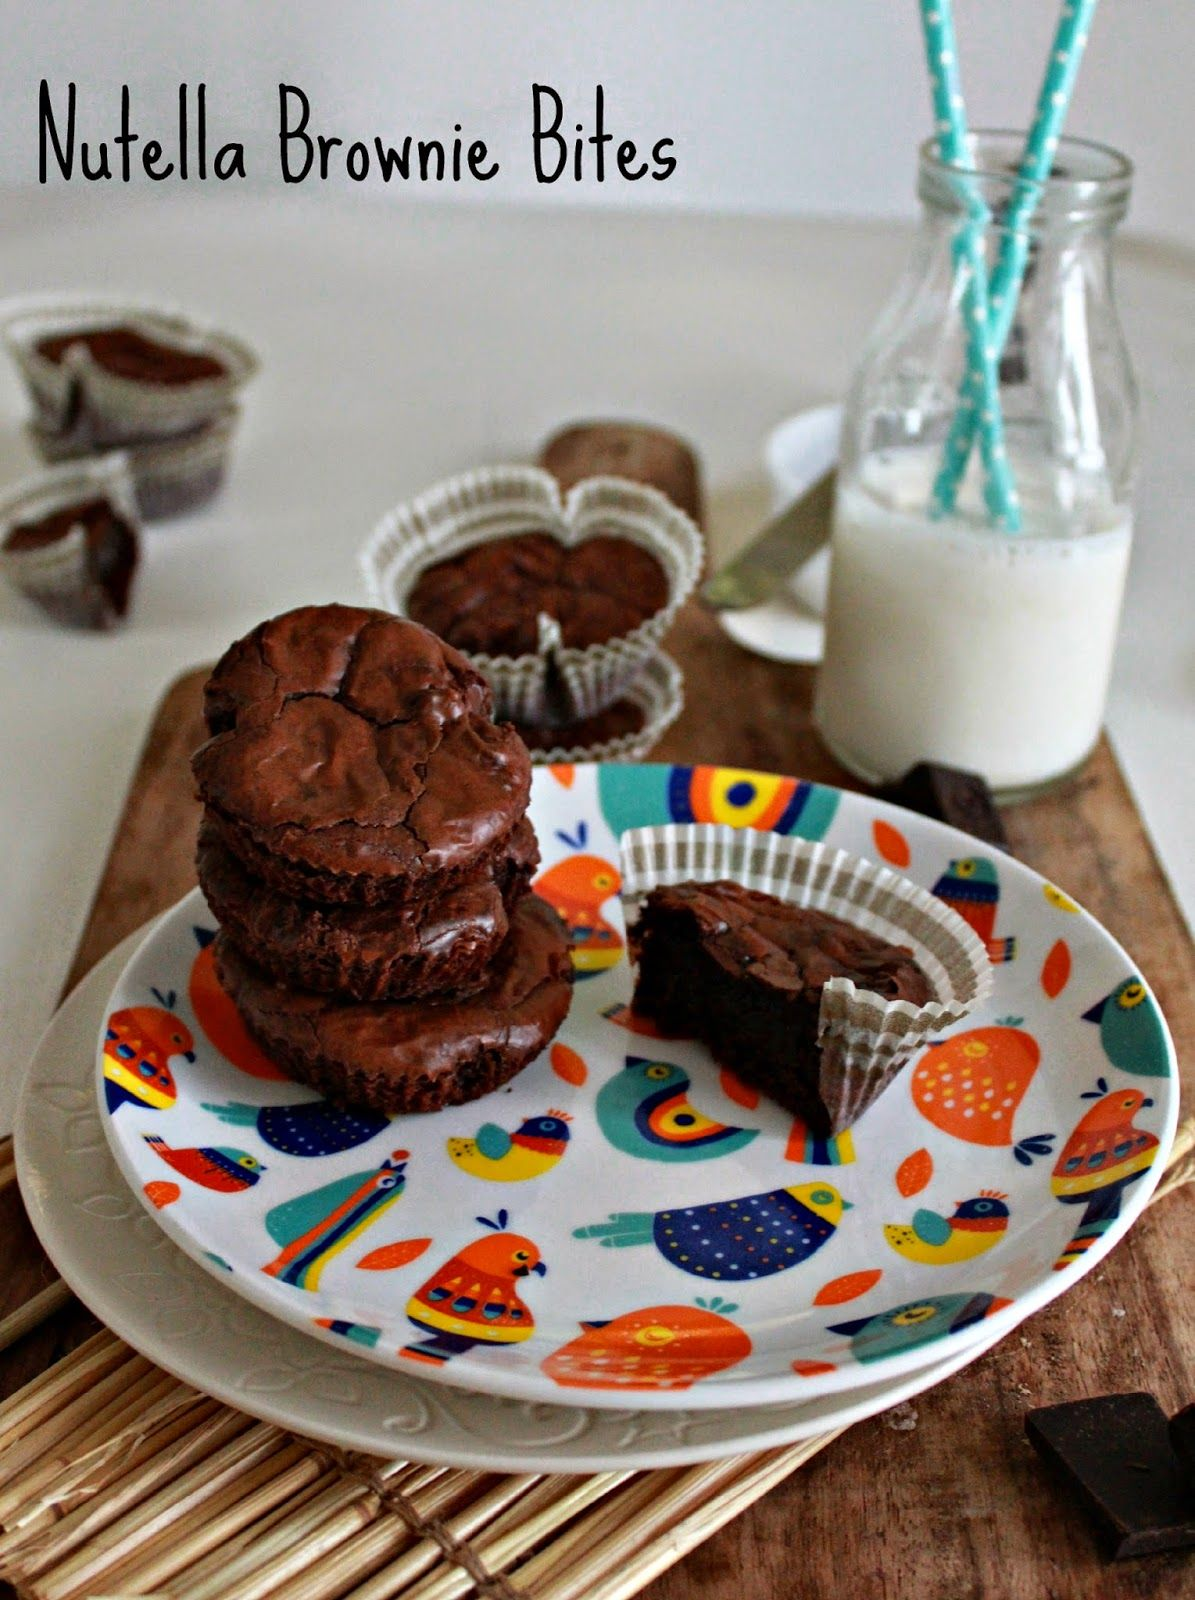 Cookaroo: Baking I Nutella Brownie Bites. With just four ingredients